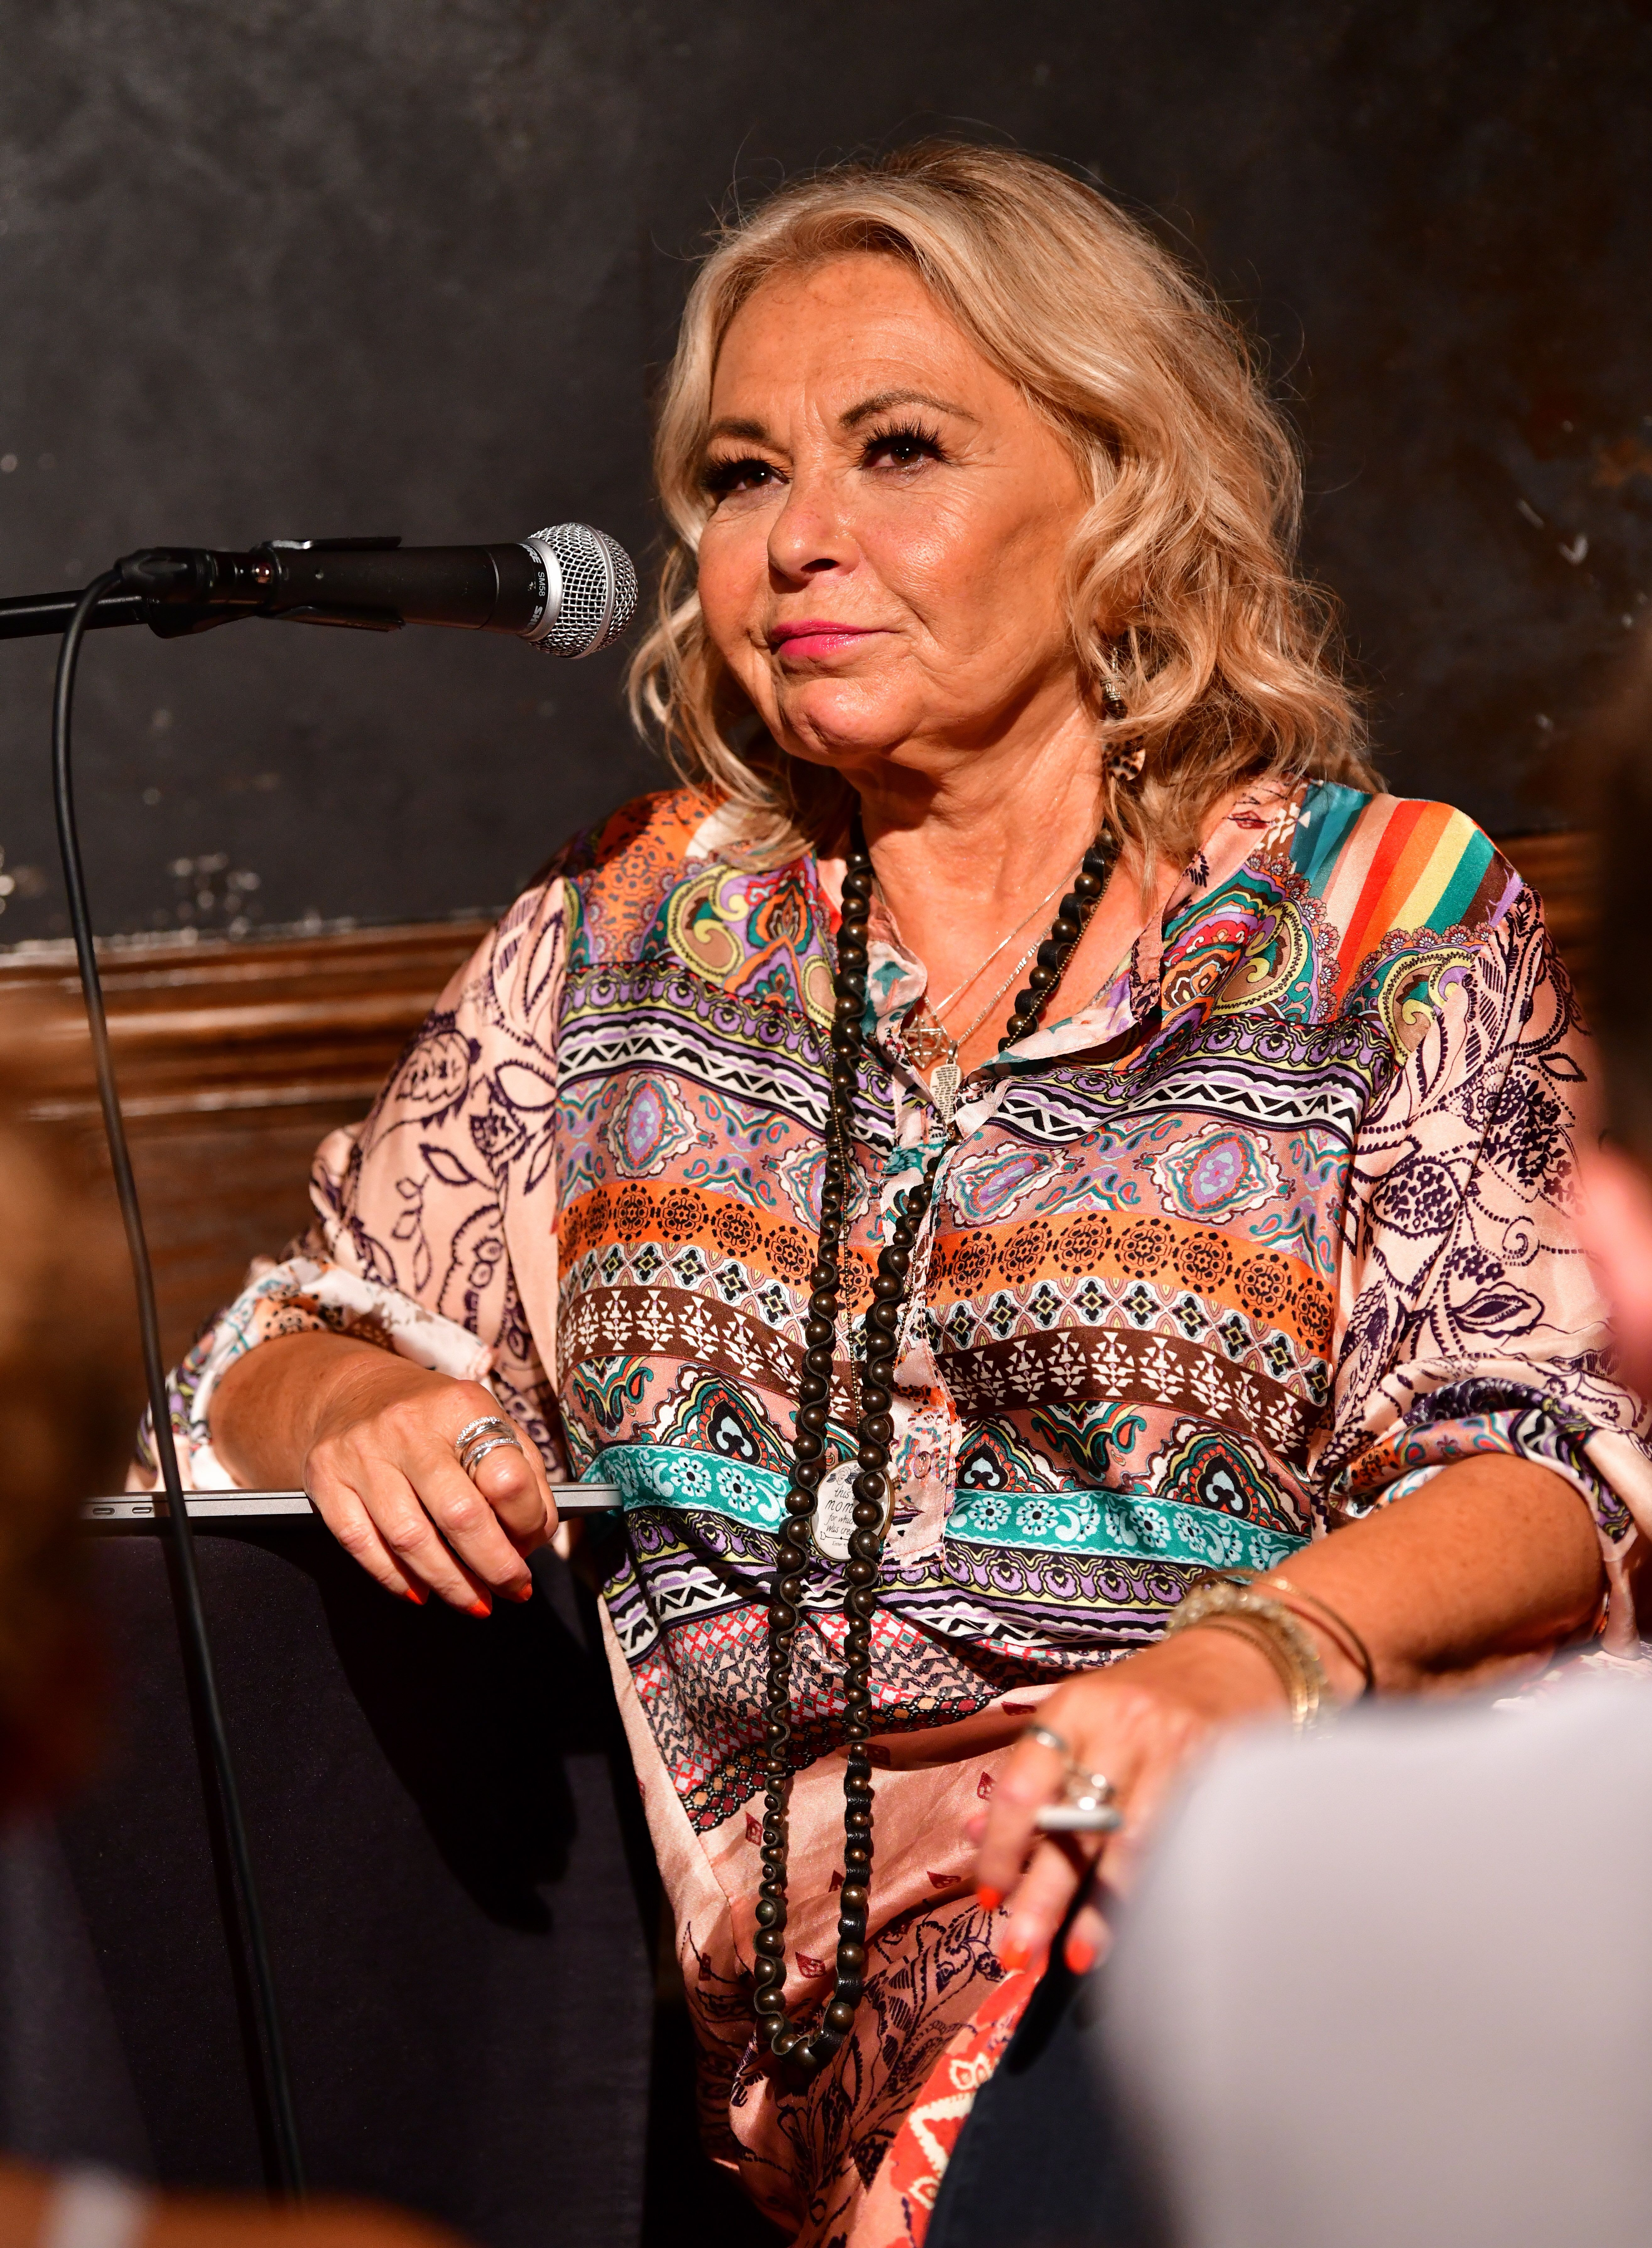 Roseanne Barr attends live podcast at Stand Up. | Source: Getty Images